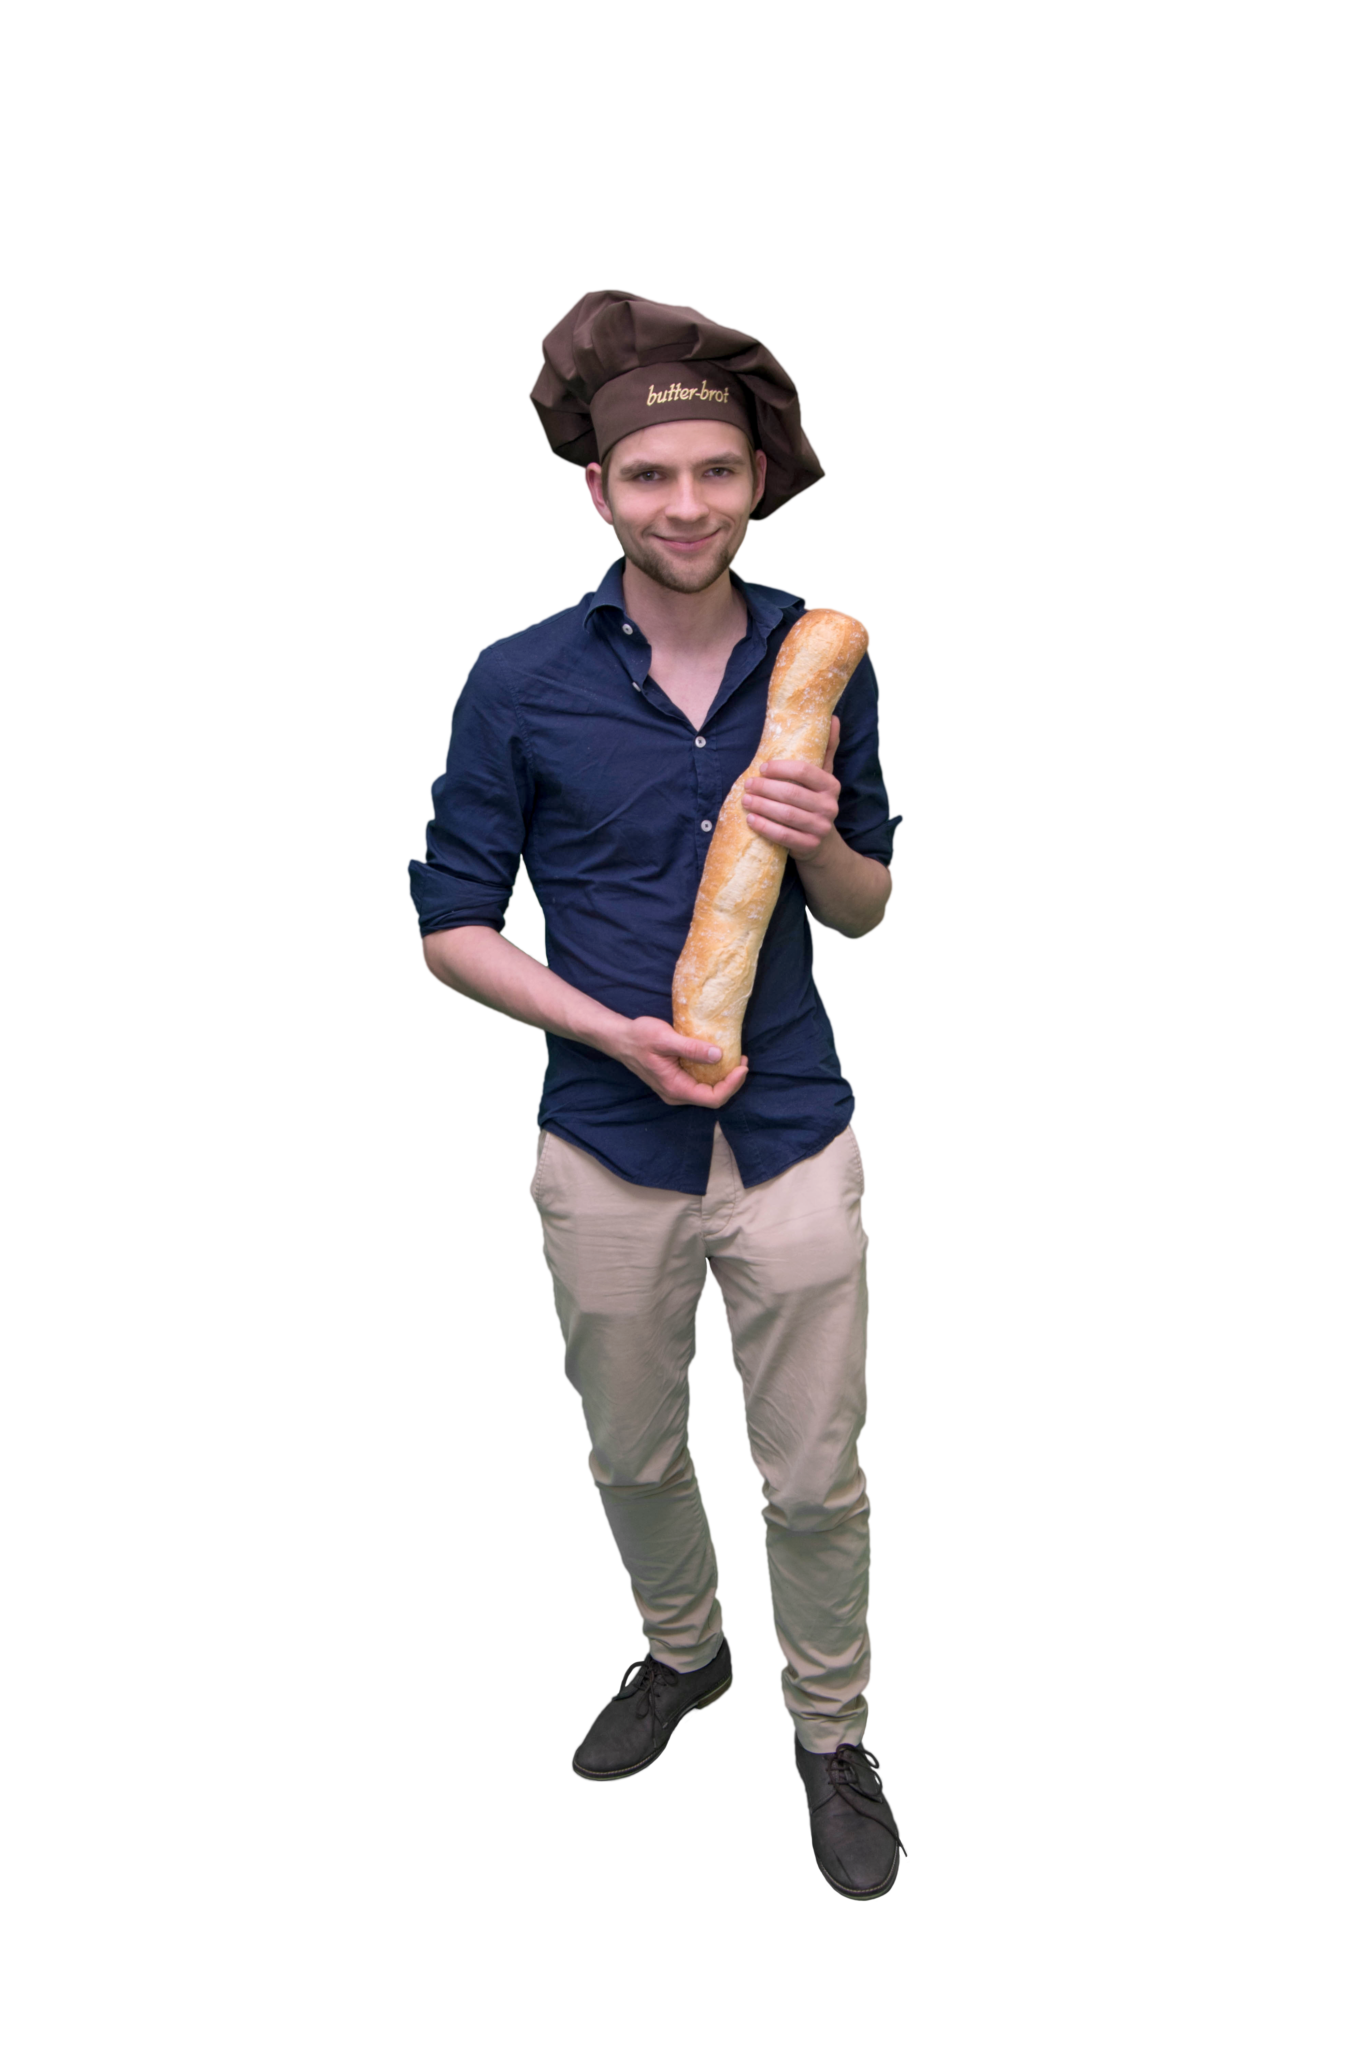 Thats me: Torben from www.bake-your-bread.com